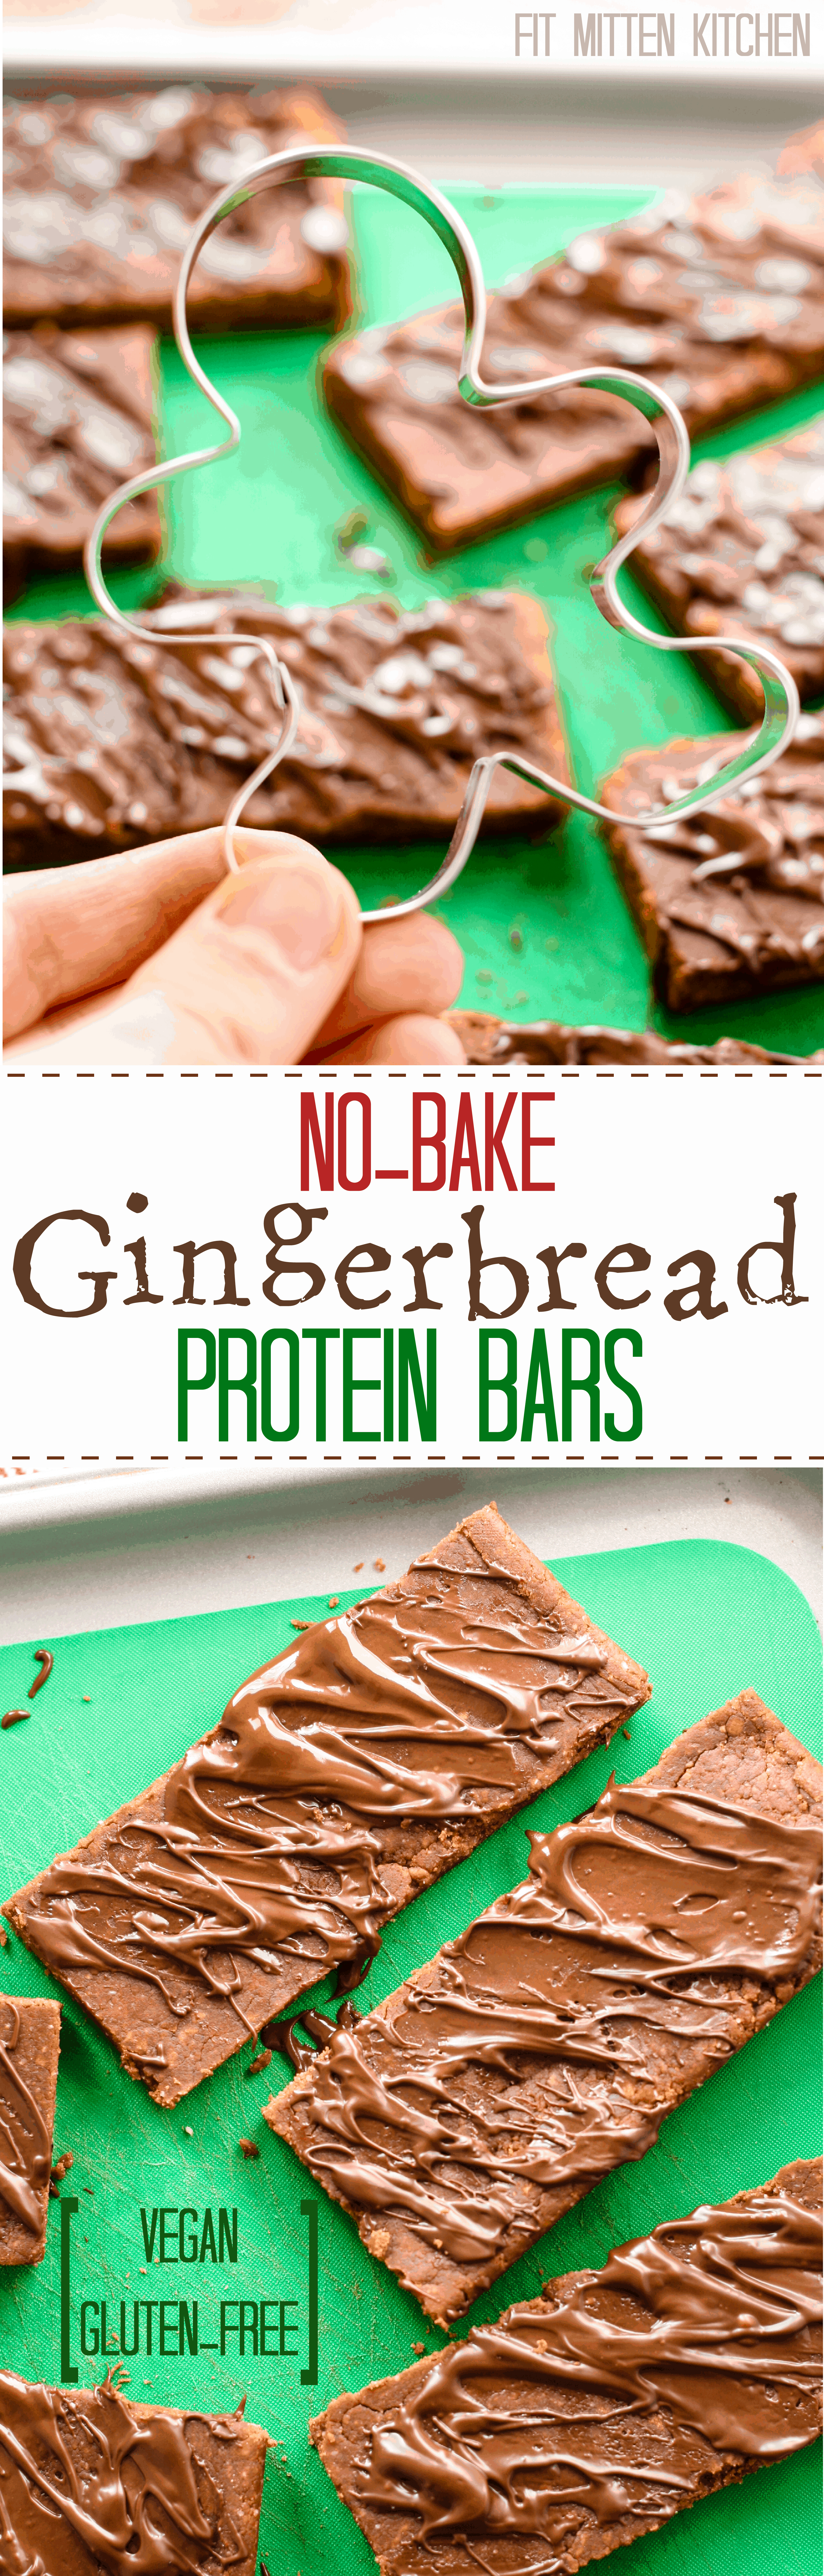 No-Bake Gingerbread Protein Bars